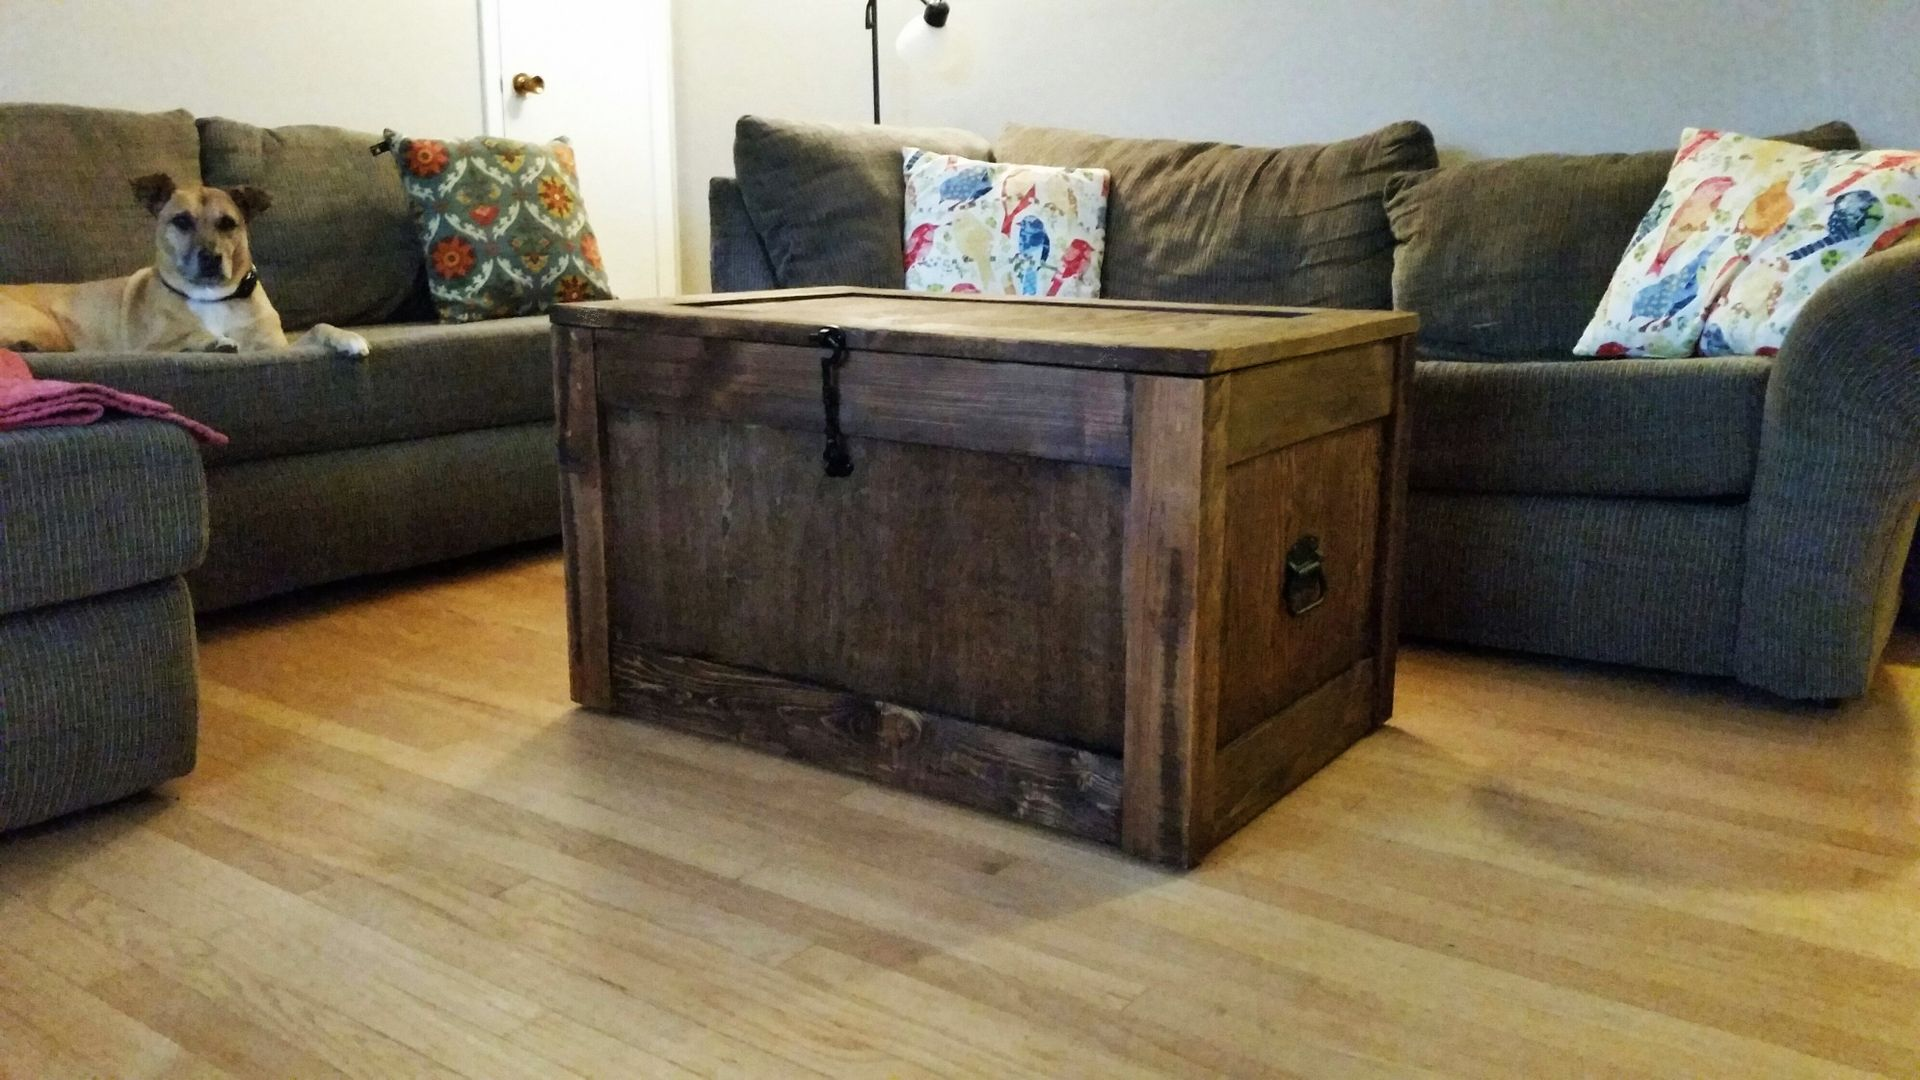 Custom Made Barnwood  Trunks Chests Steamer Trunk Coffee Table Storage Buy a Handmade